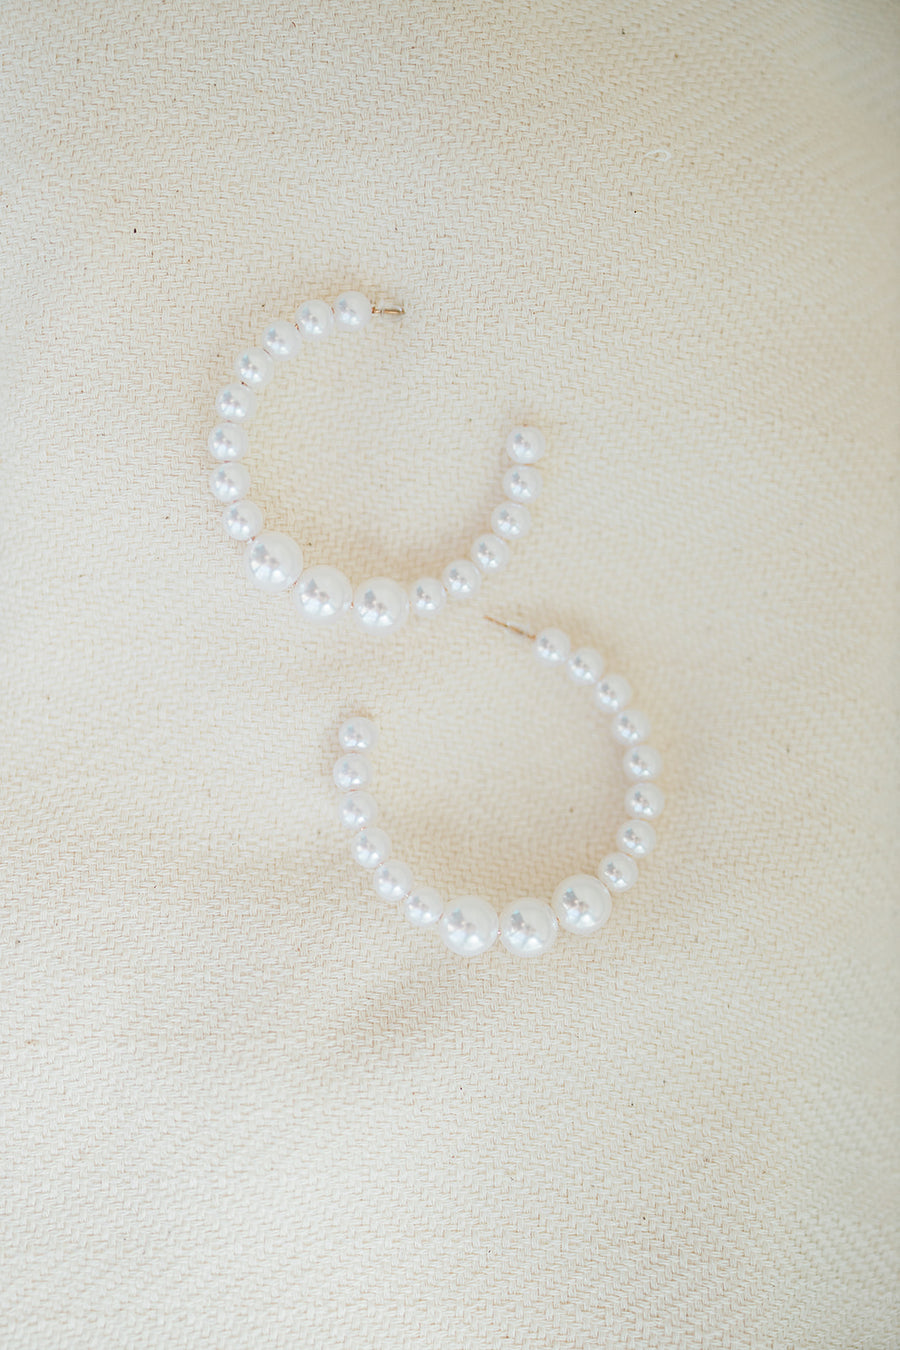 Turks and Caicos Medium Pearl Hoop Earring - The Beach Bride by Chic Parisien, a destination for beach weddings, bachelorettes and honeymoons